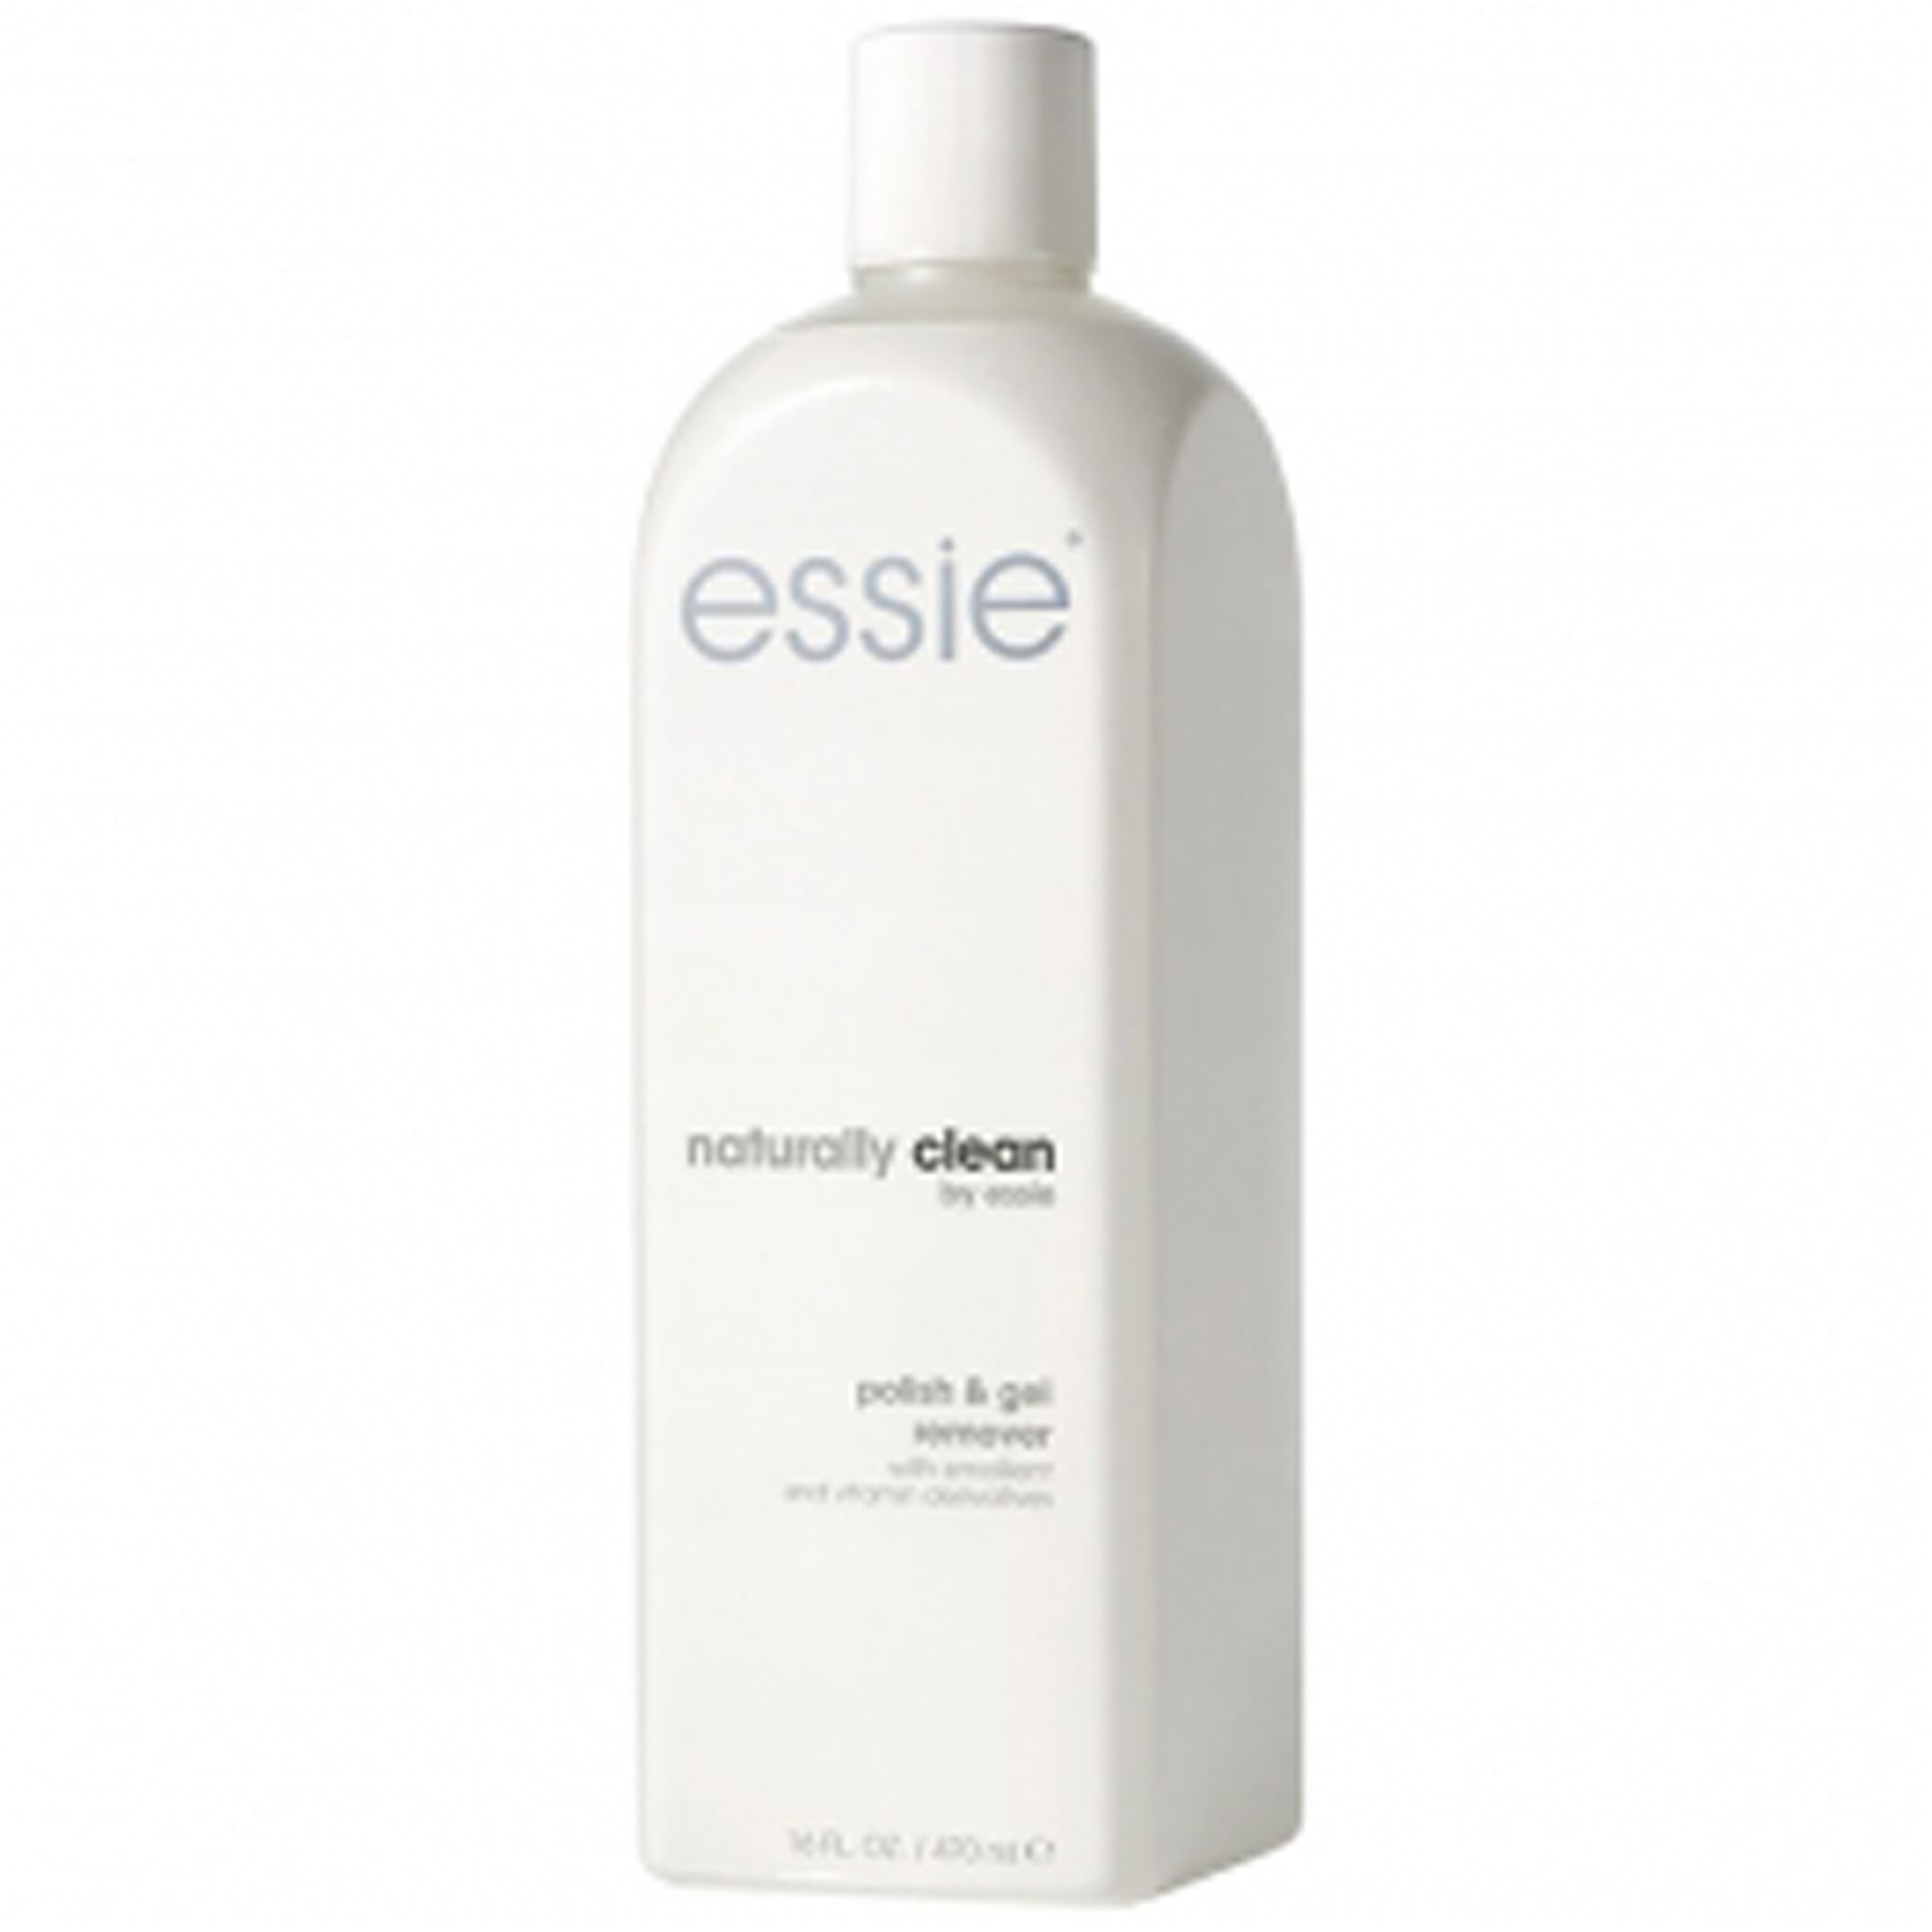 Essie Naturally Clean Nail Polish Remover